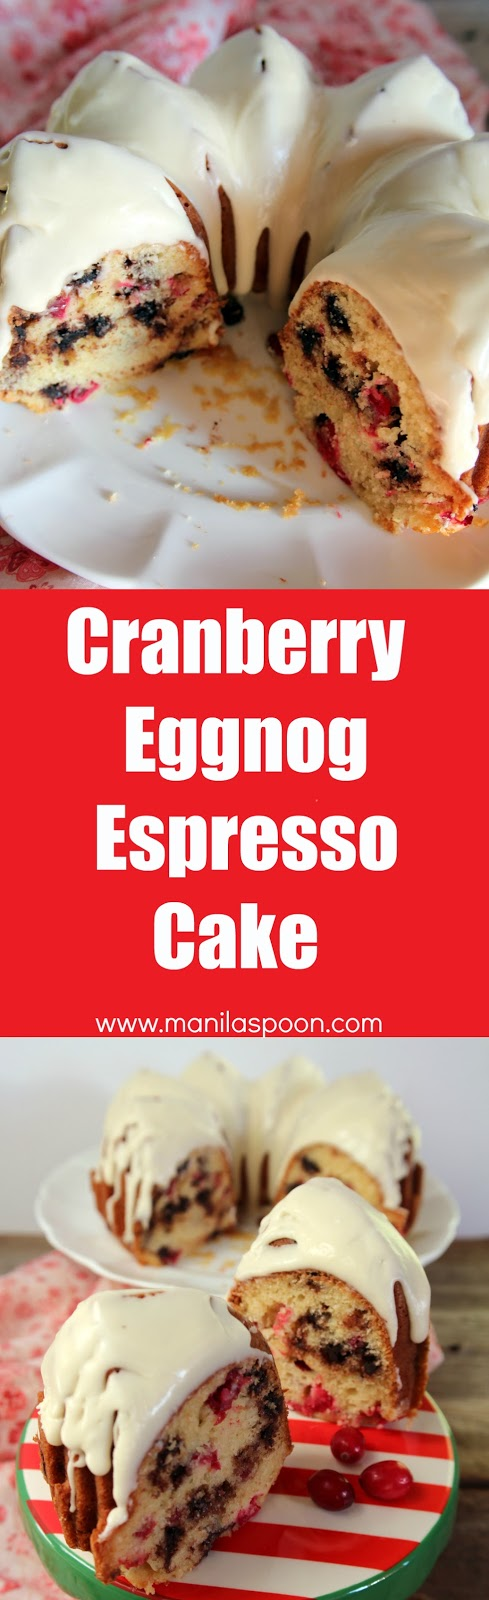 No need for a mixer to make this easy and delicious Cranberry Eggnog and Espresso (Chocolate) Chip Cake. It's sweet, tart and full of chocolate goodness, too! The perfect dessert for Christmas and New Year. | manilaspoon.com